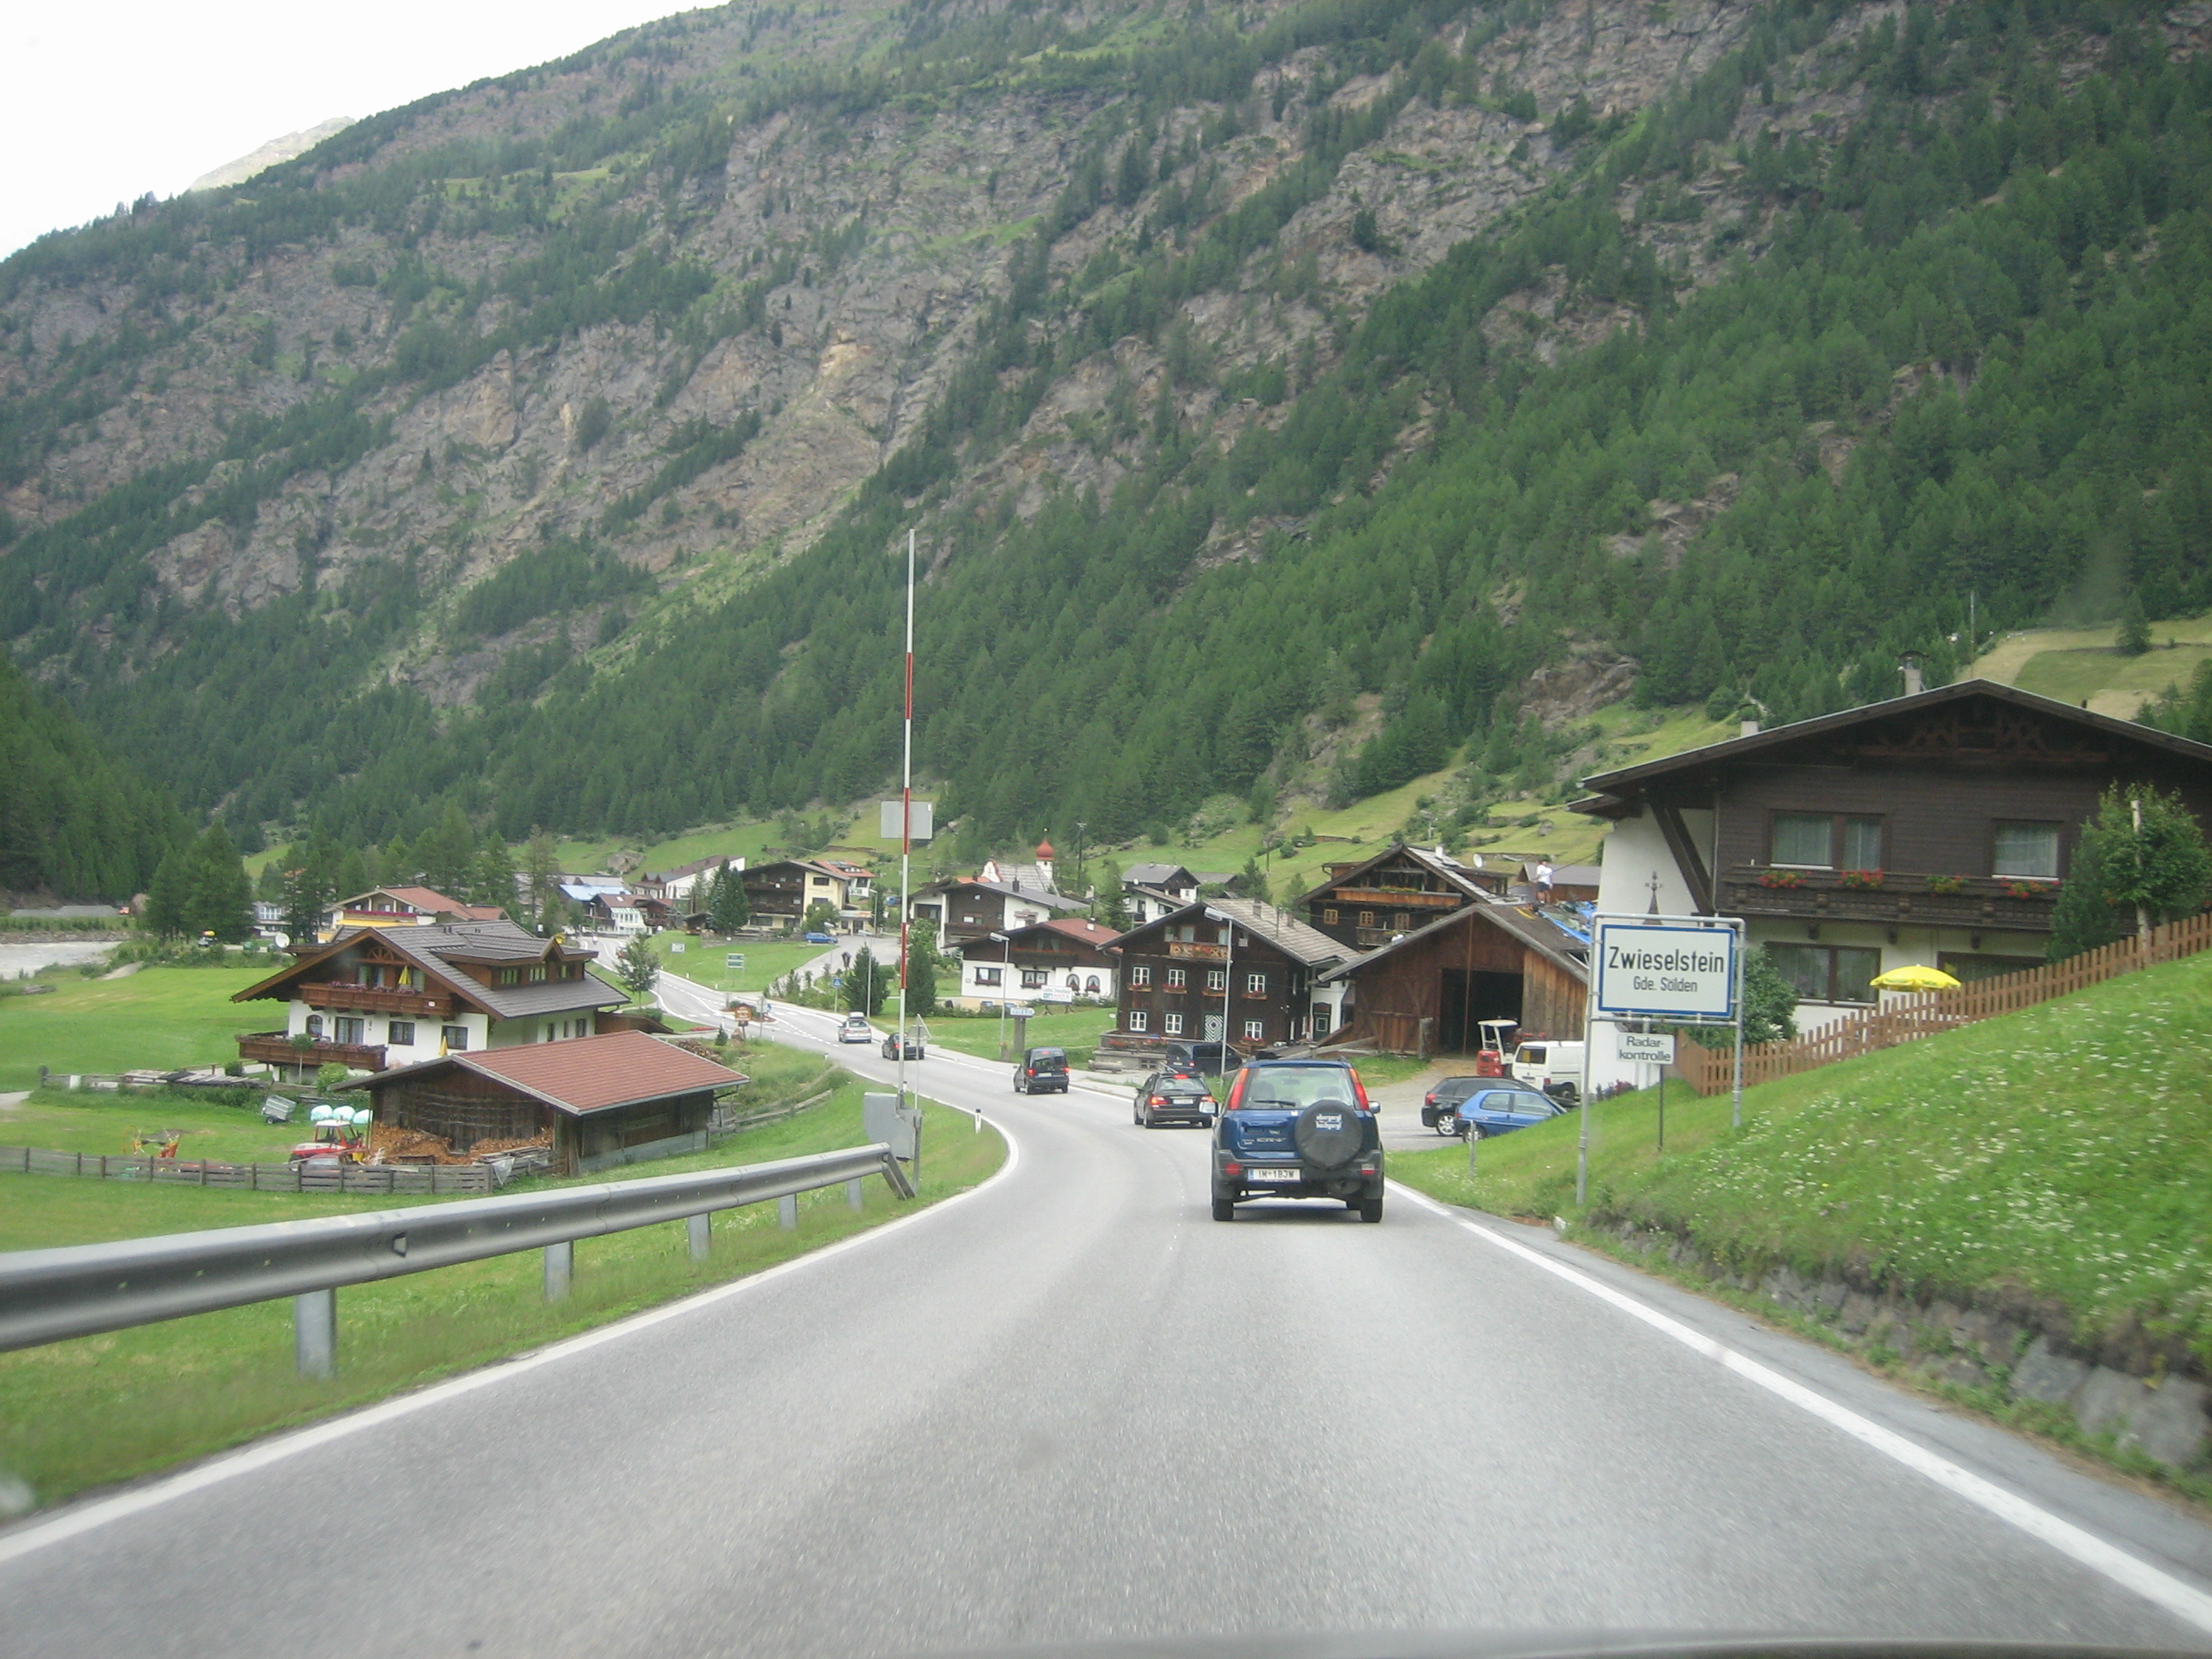 Road trip to towns near Milan, Italy including Merano, Bormio, and Rive del Garda